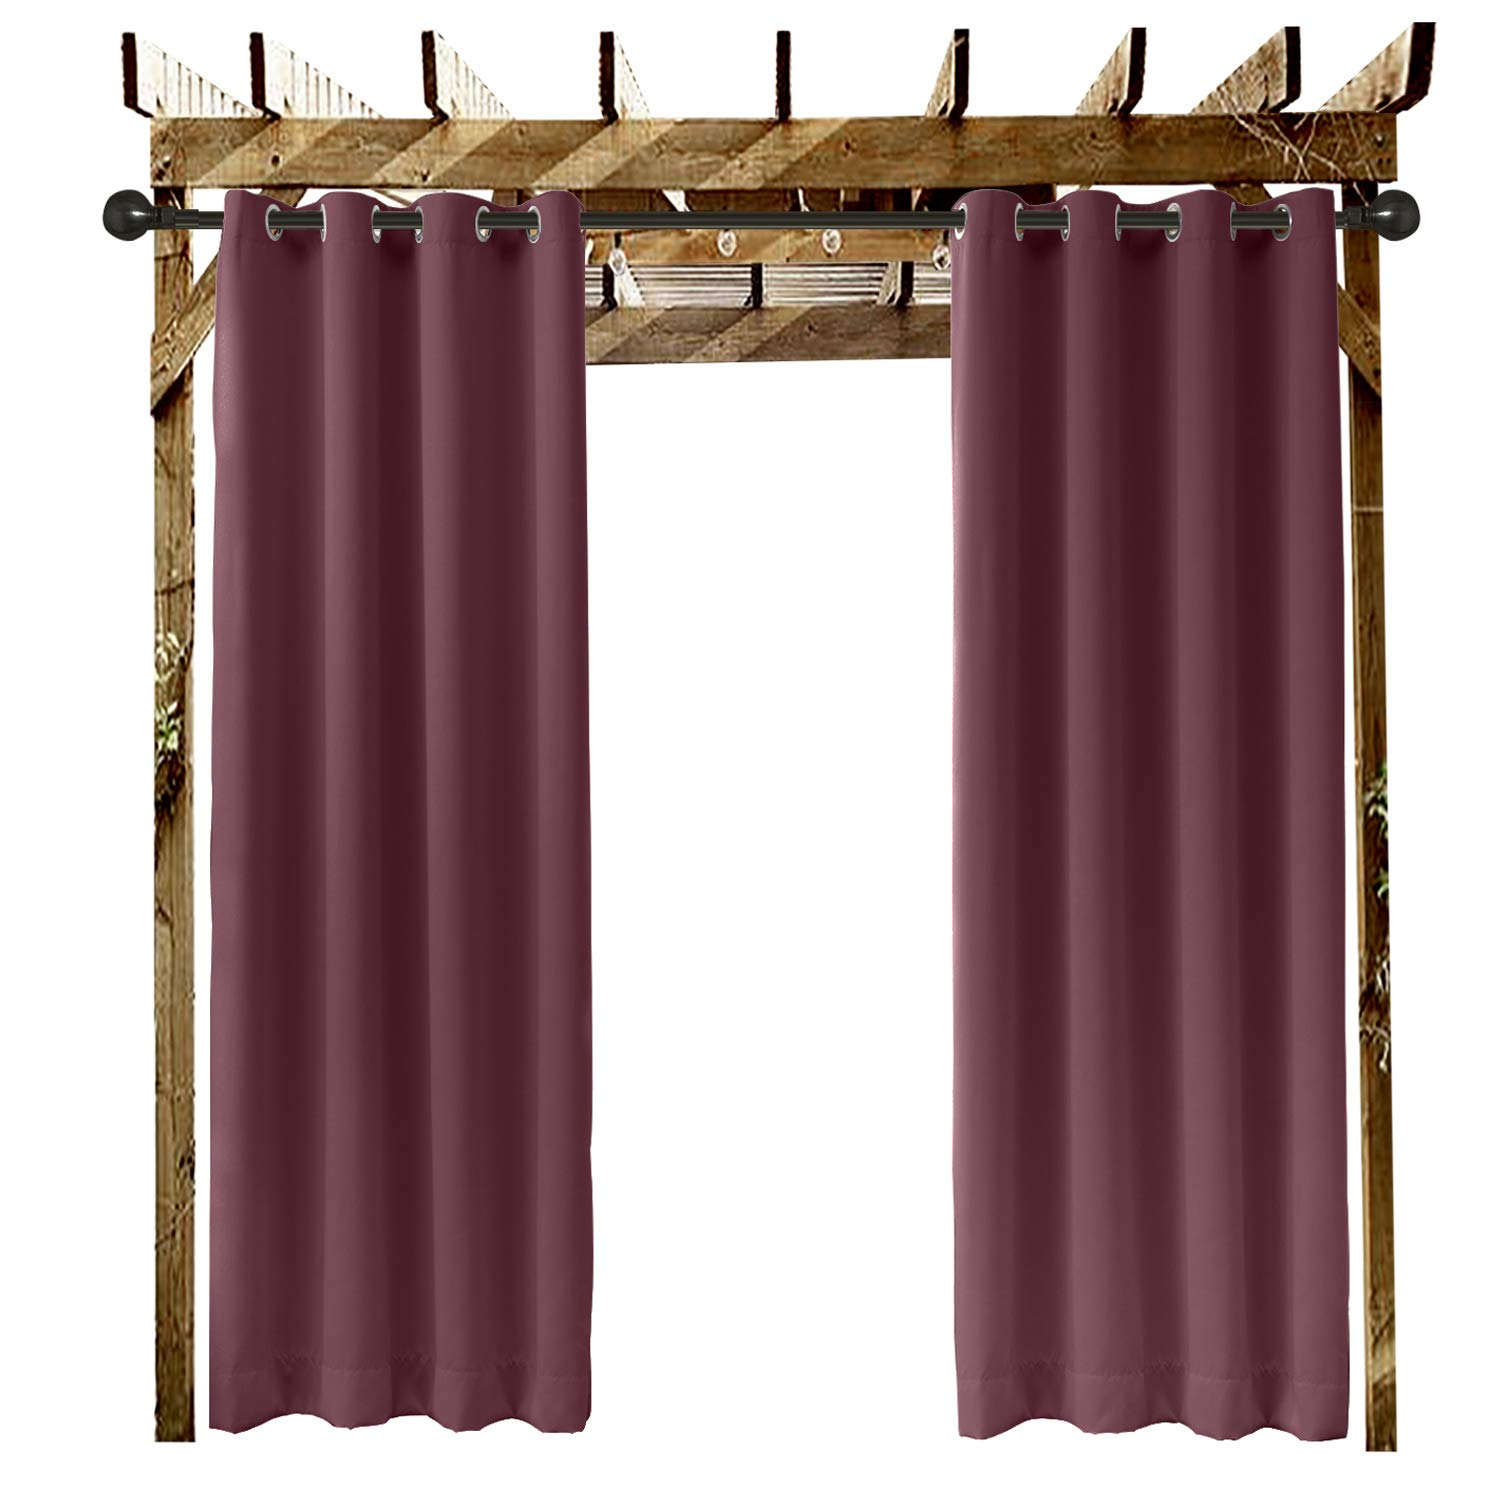 ChadMade Outdoor Curtain Burgundy 52'' W x 84'' L Grommet Eyelet in Front Porch Pergola Cabana Covered Patio Gazebo Dock and Beach Home (1 Panel)